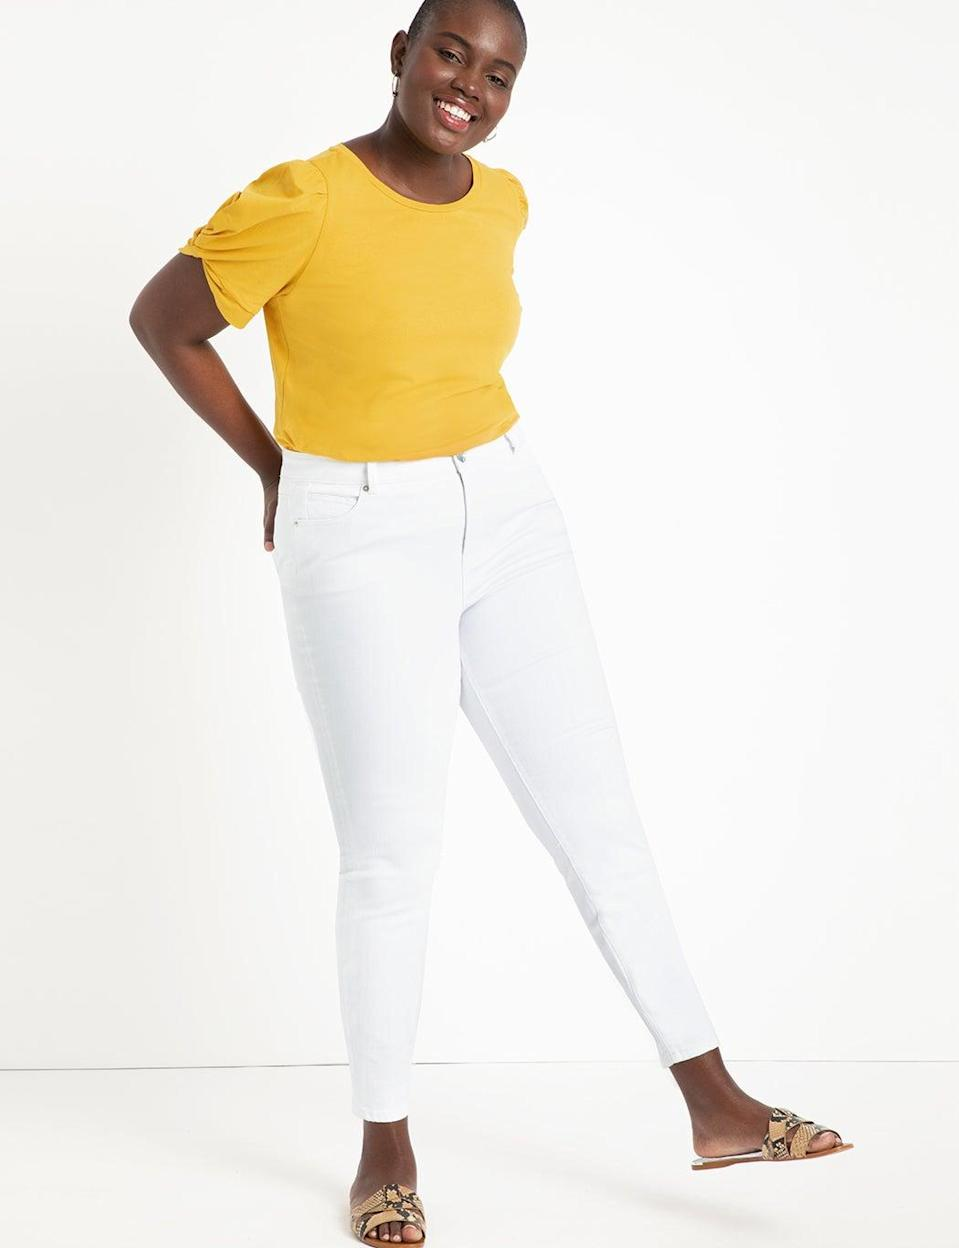 <br> <br> <strong>Eloquii</strong> Classic Fit Peach Lift Jean, $, available at